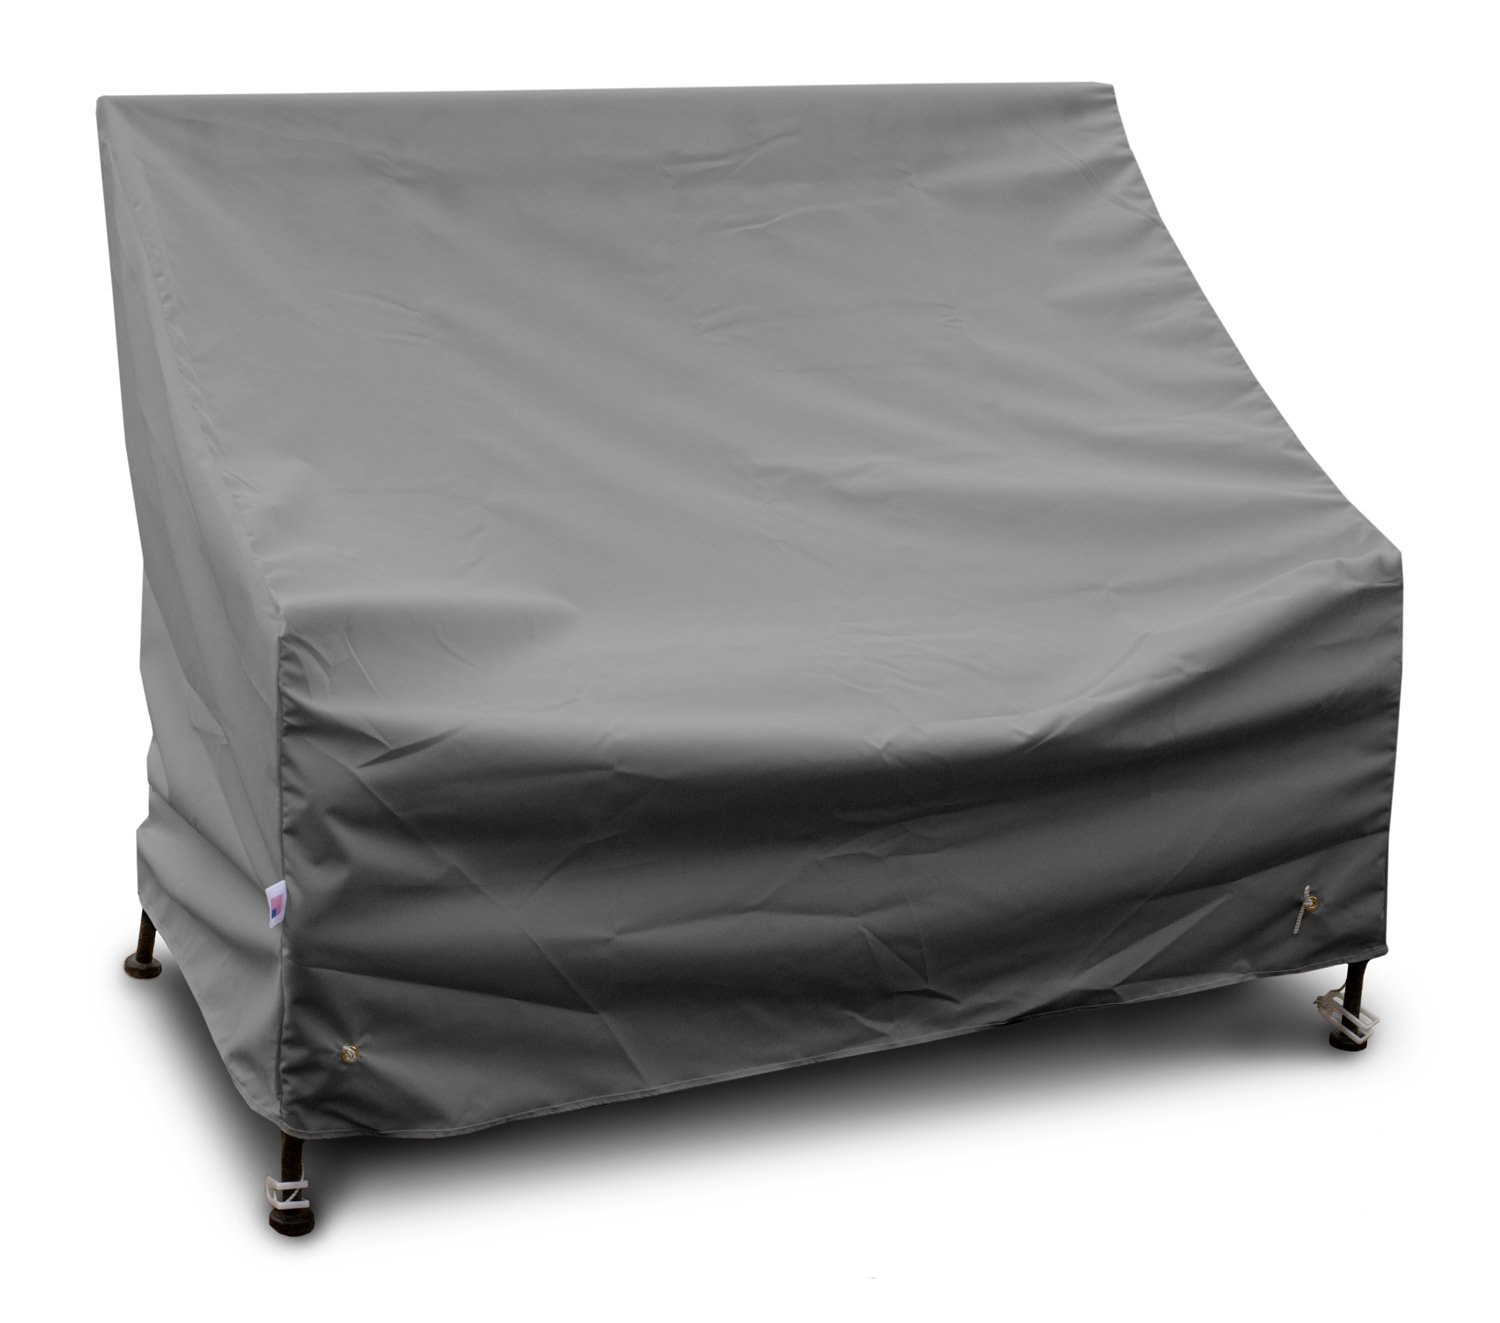 KOVERROOS 3-Seat Glider Lounge Cover